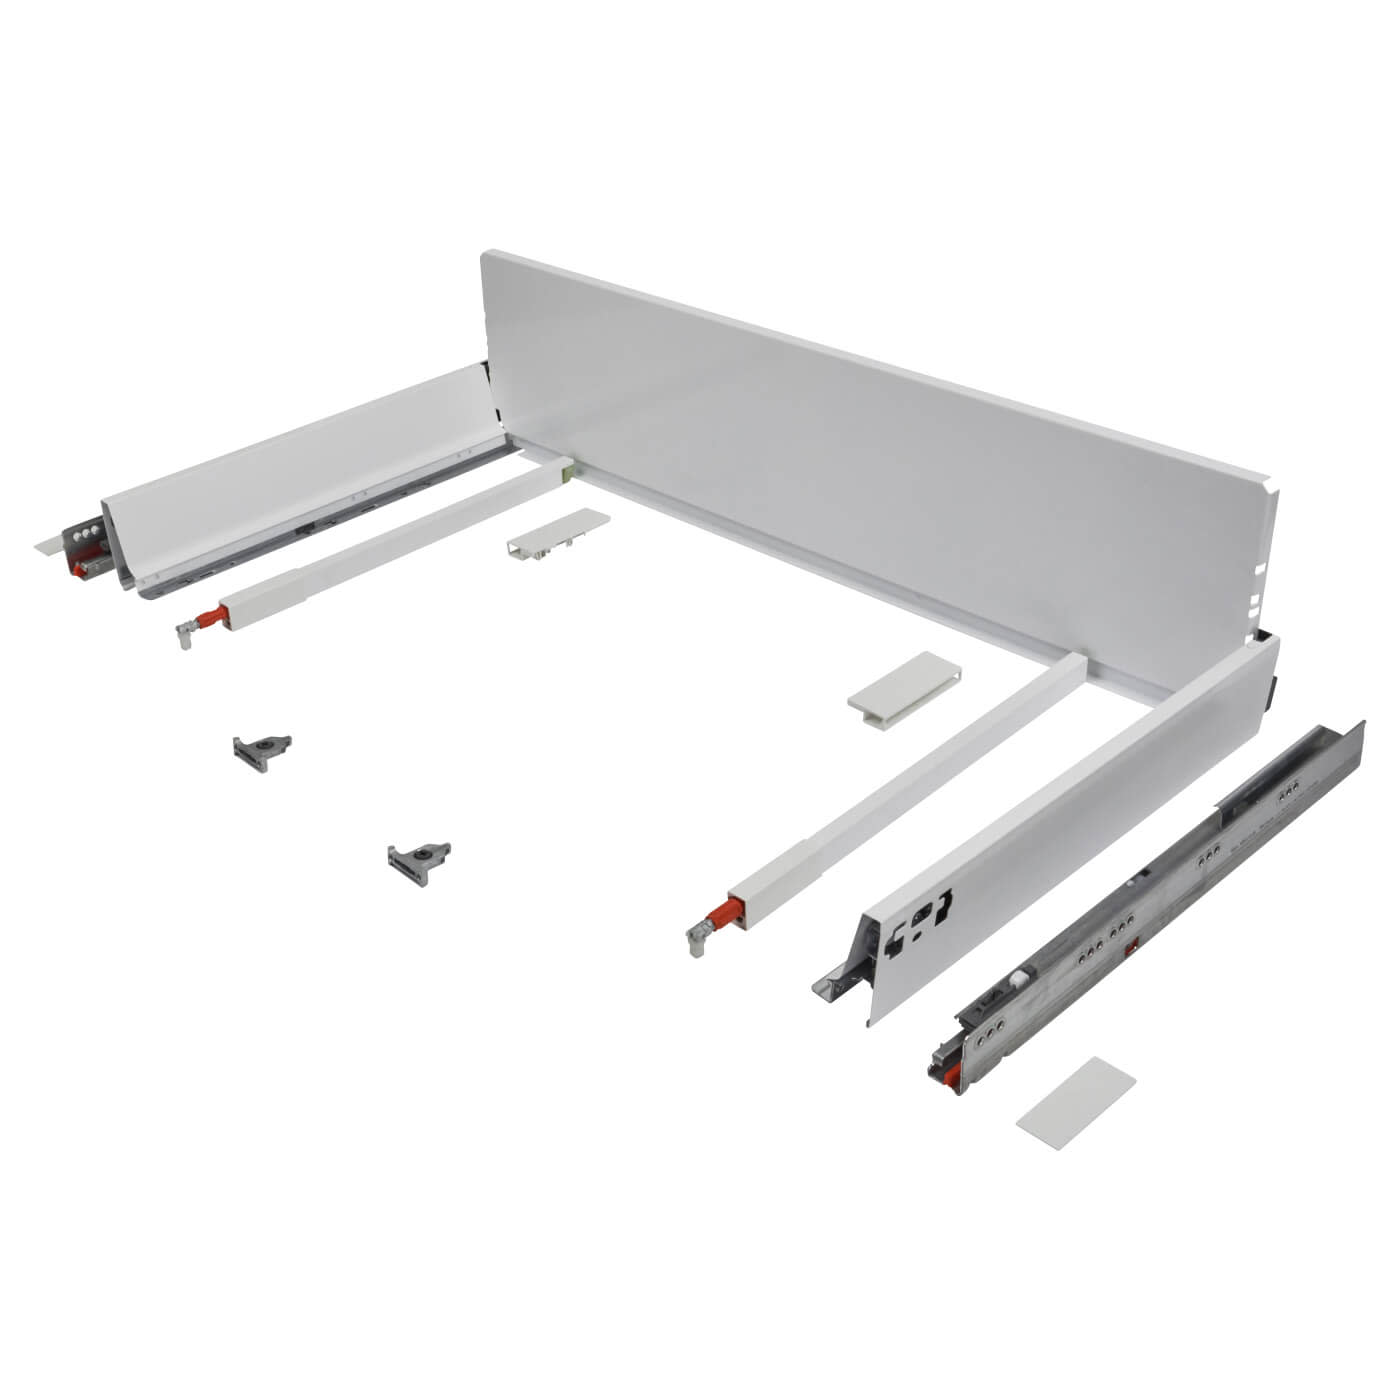 Blum TANDEMBOX ANTARO Pan Drawer - BLUMOTION Soft Close - (H) 203mm x (D) 270mm x (W) 1200mm - Whit)